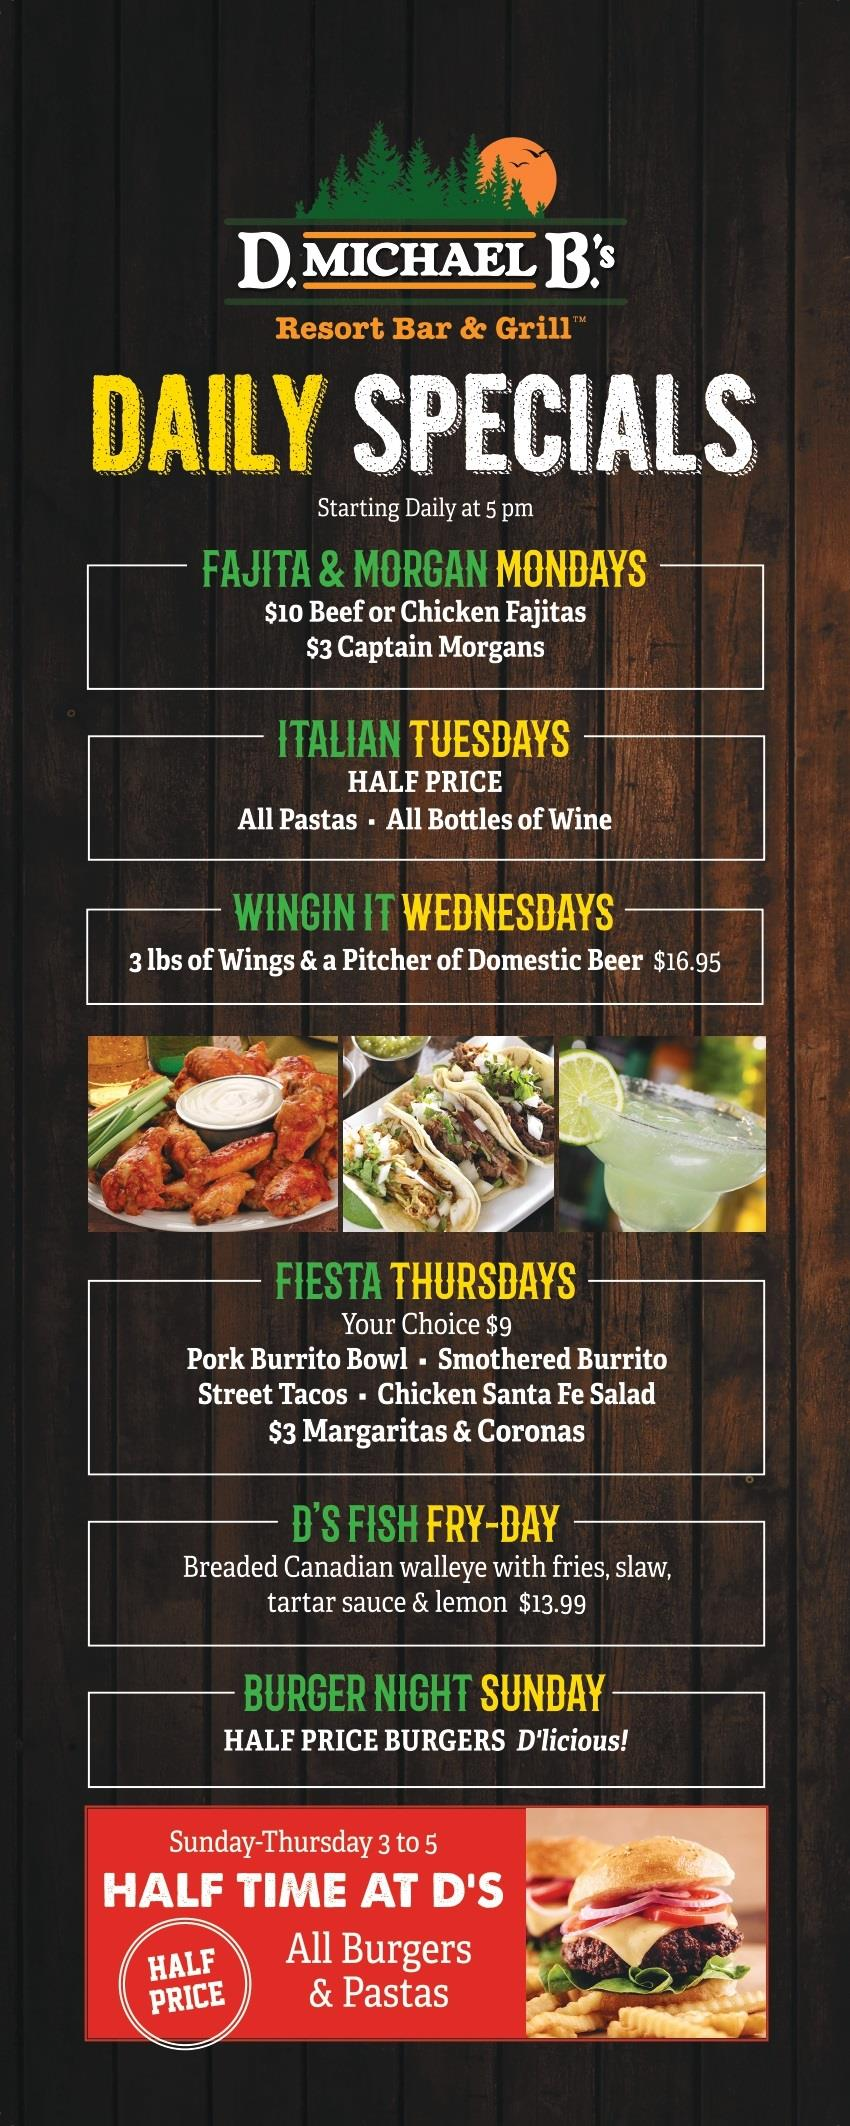 Daily Specials - click for readable PDF